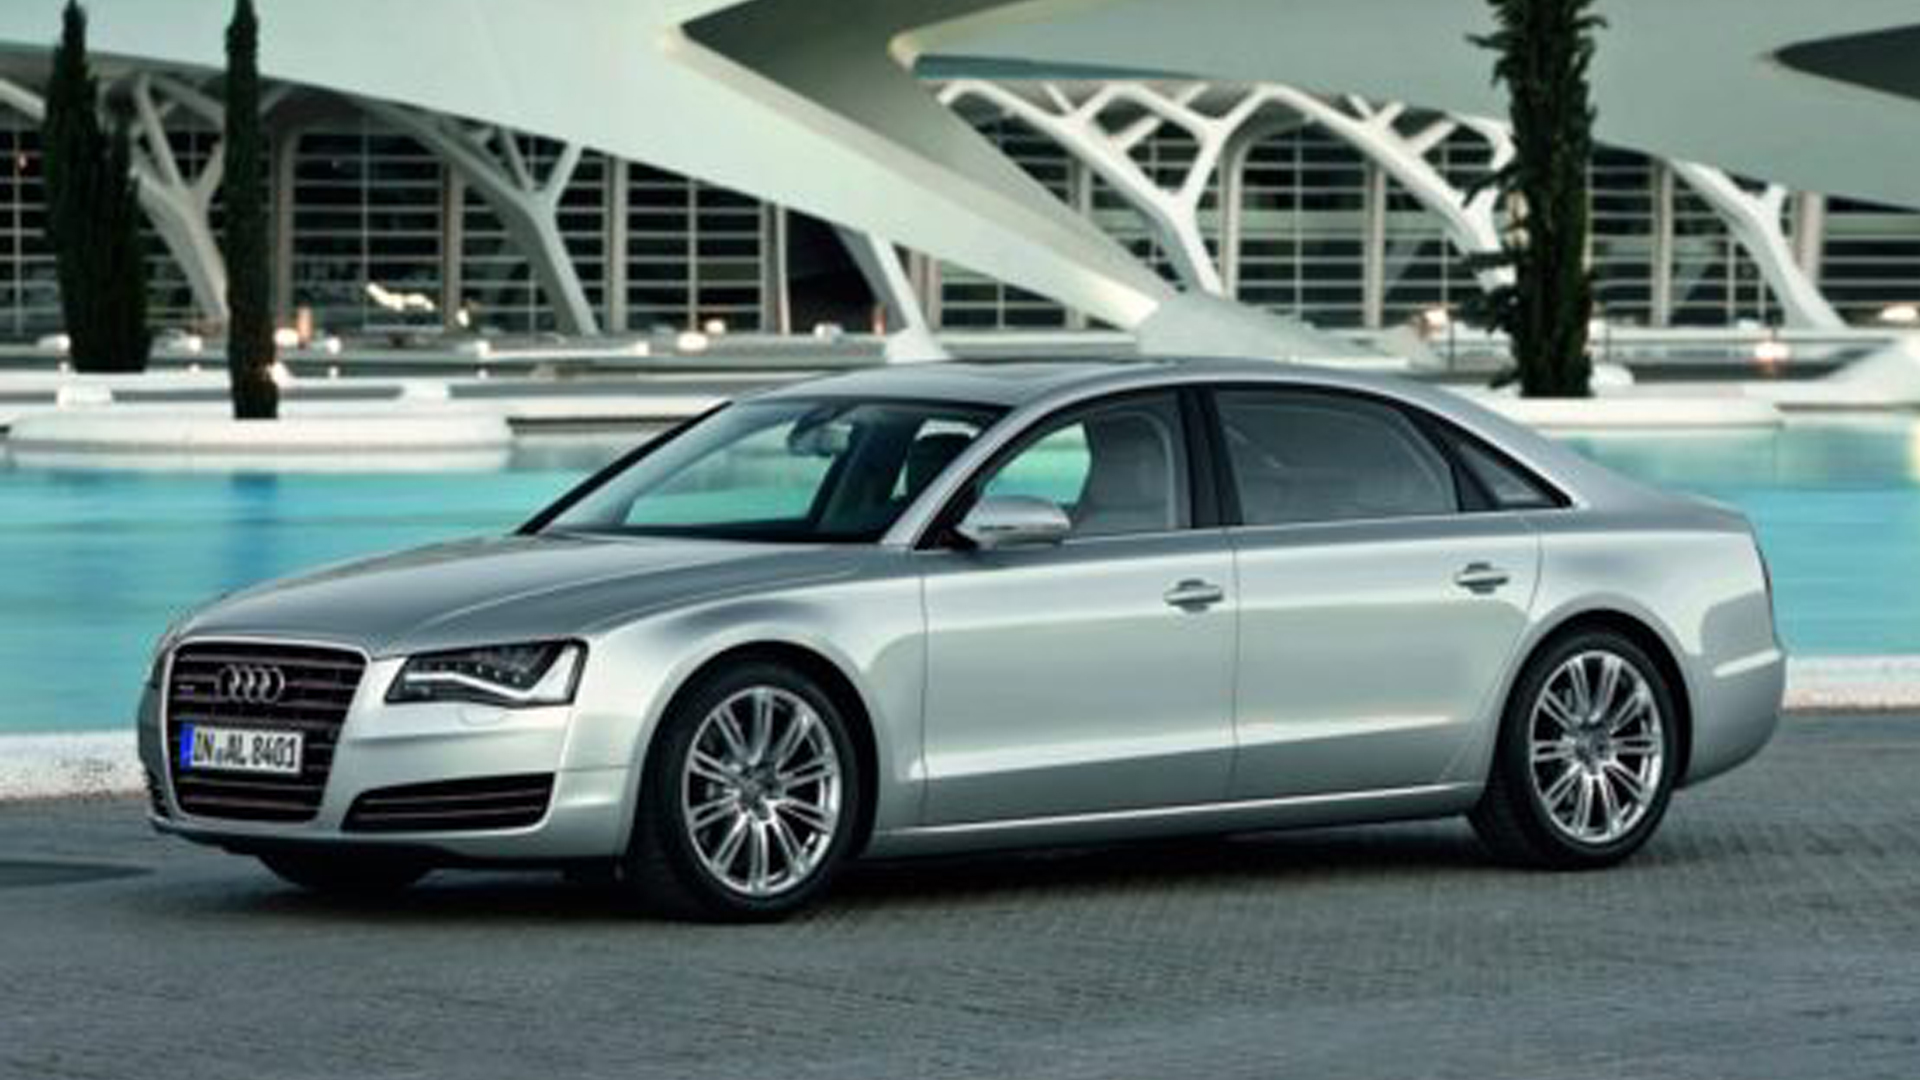 2013 Audi A8 (View 2 of 6)